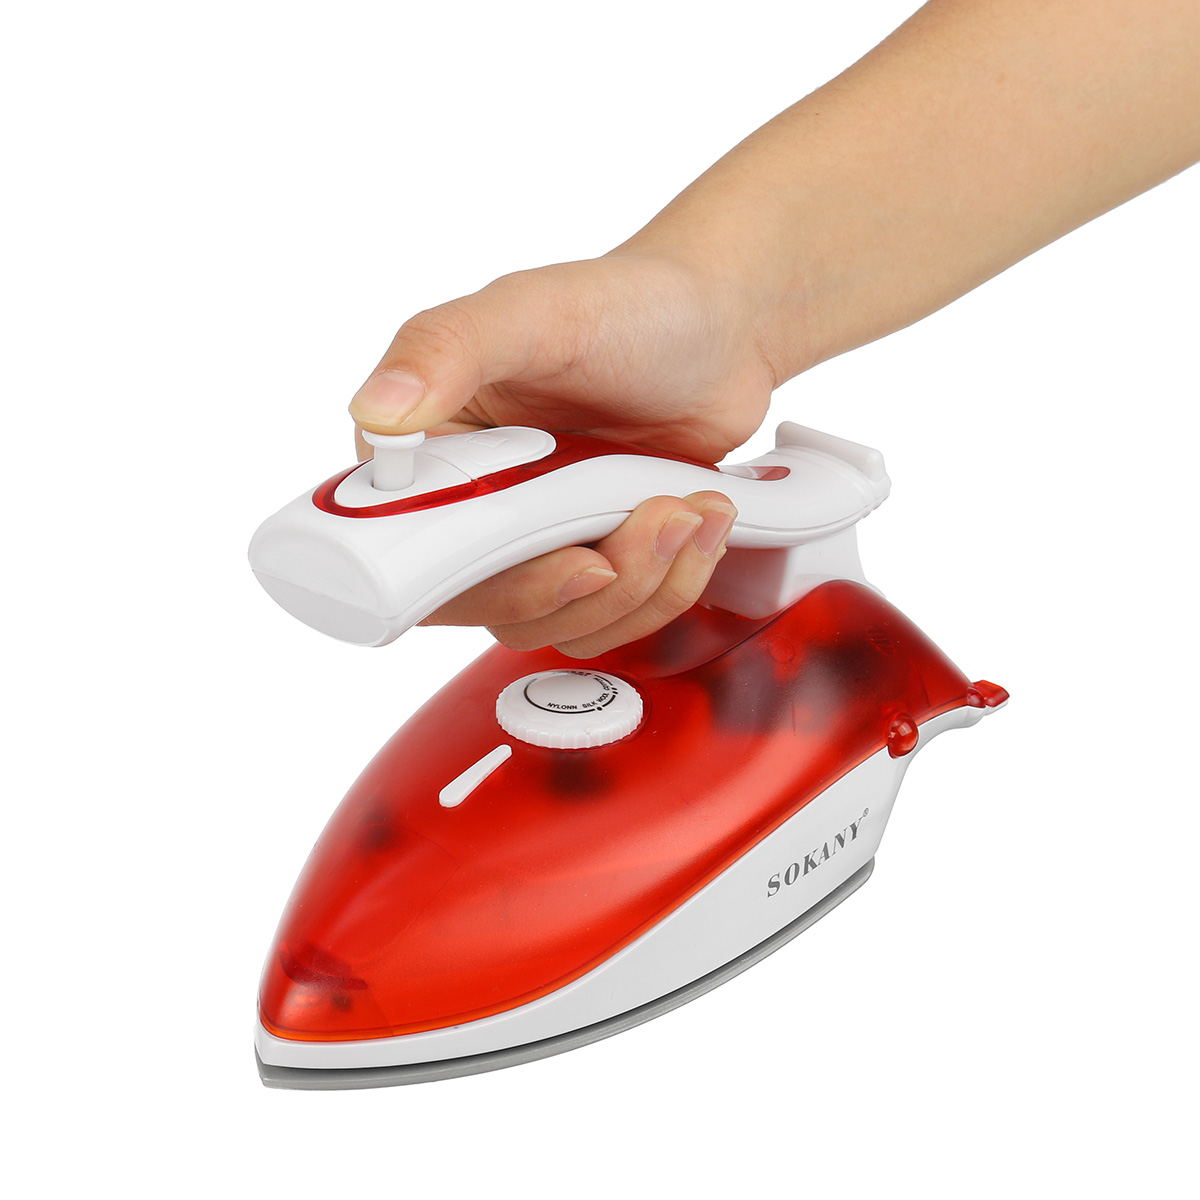 SOKANY PL-368 1000W Handheld Portable Garment Steamer 5 Gear Ironing Machine Dry and Wet-ironing Wrinkle Remover Fast Heat for Travel Home